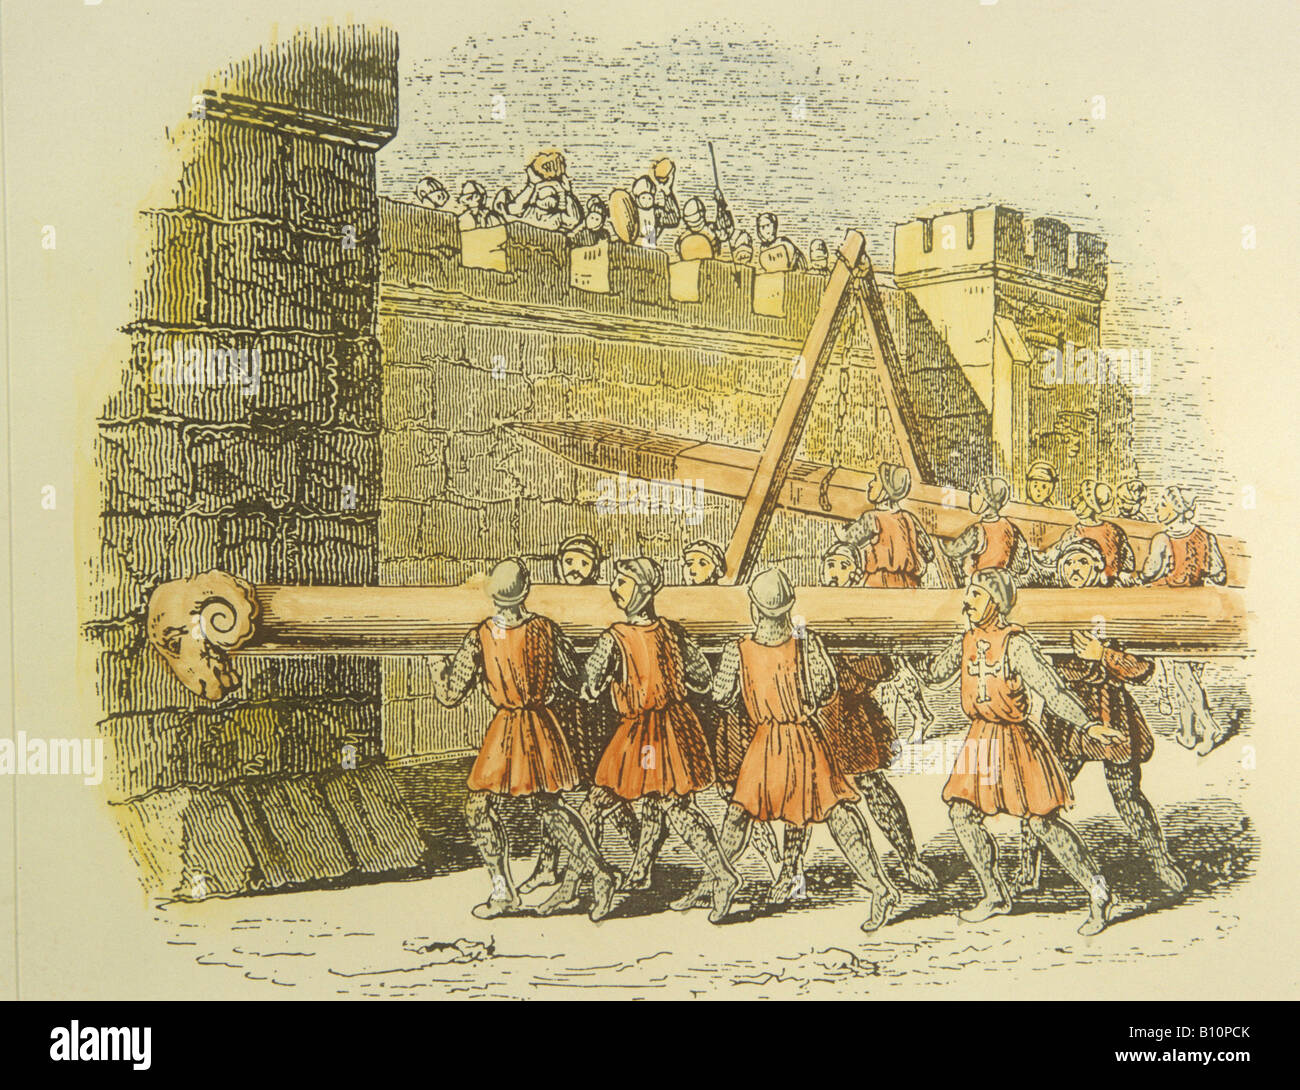 Medieval Wall Art Stock Photos & Medieval Wall Art Stock Images - Alamy